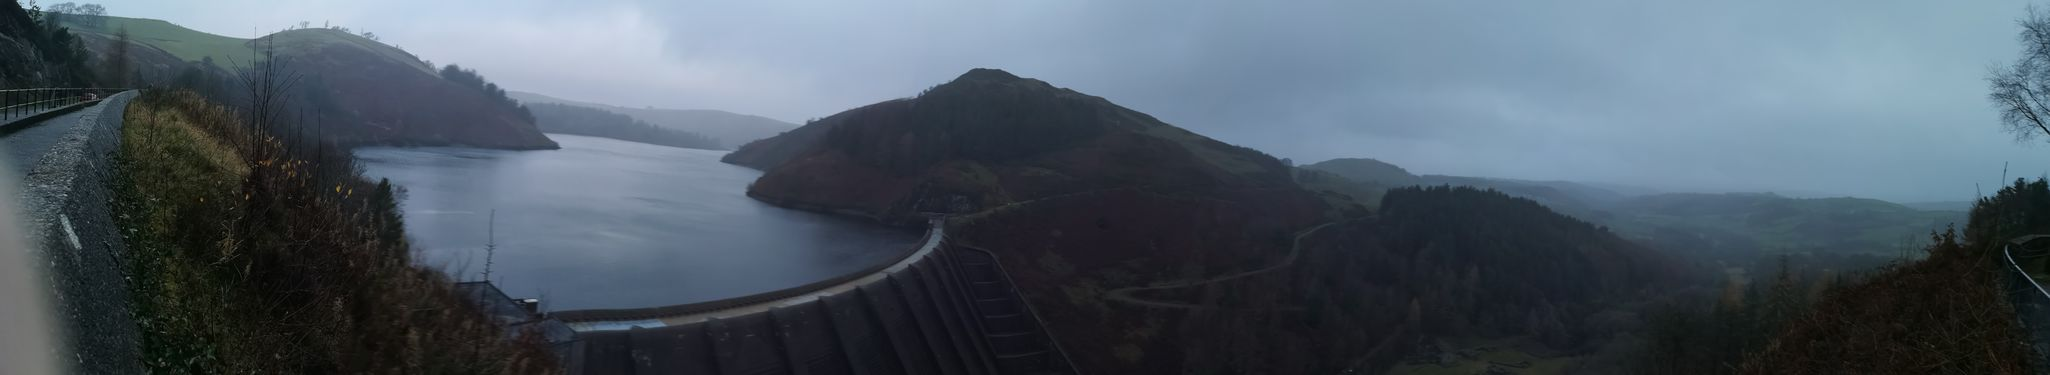 Looks like I'm flying... Water Dam Dam Looking Down Panoramic Photography Panorama P20 Pro Welsh Countryside Wales❤ Wales Mountain Range Wales You Beauty Dam Wall WoodLand Forest Photography Water Mountain Fog Lake Panoramic Sky Mountain Range Mountain Peak Overcast Atmospheric Mood Majestic Weather Dramatic Sky